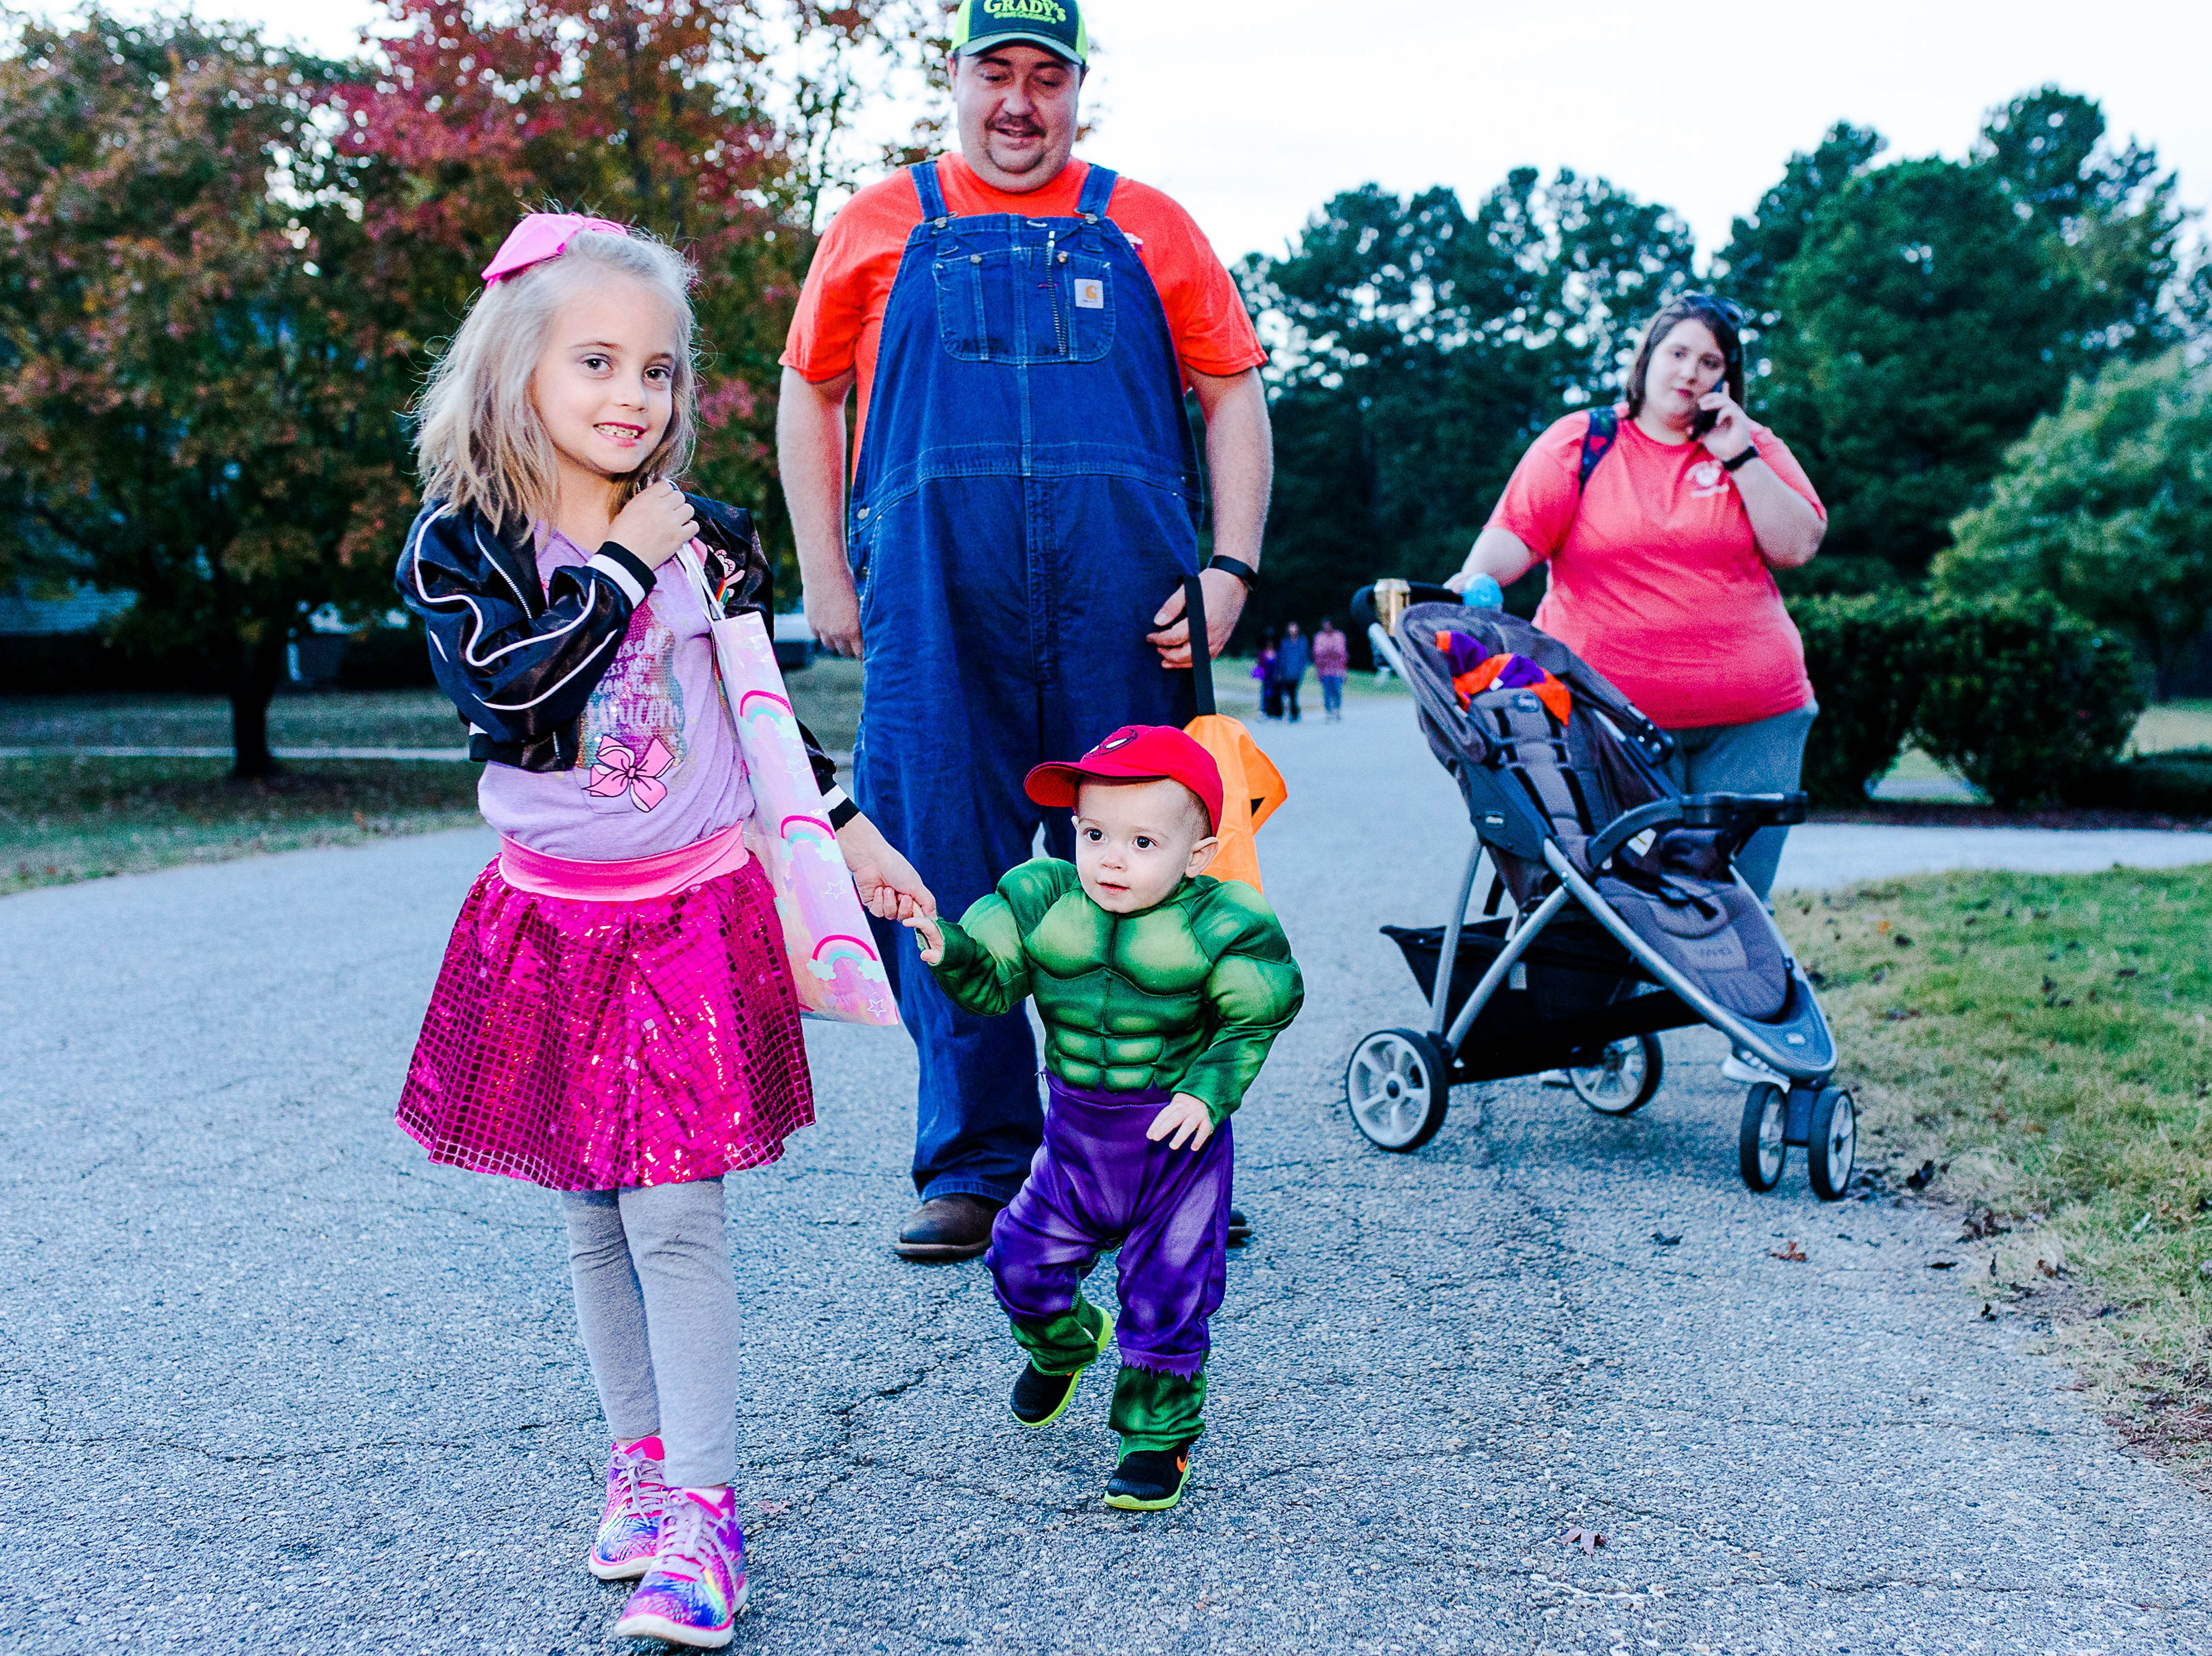 Children enjoy trick-or-treating in the Cobb's Glenn subdivision in Anderson Wednesday, October 31, 2018.